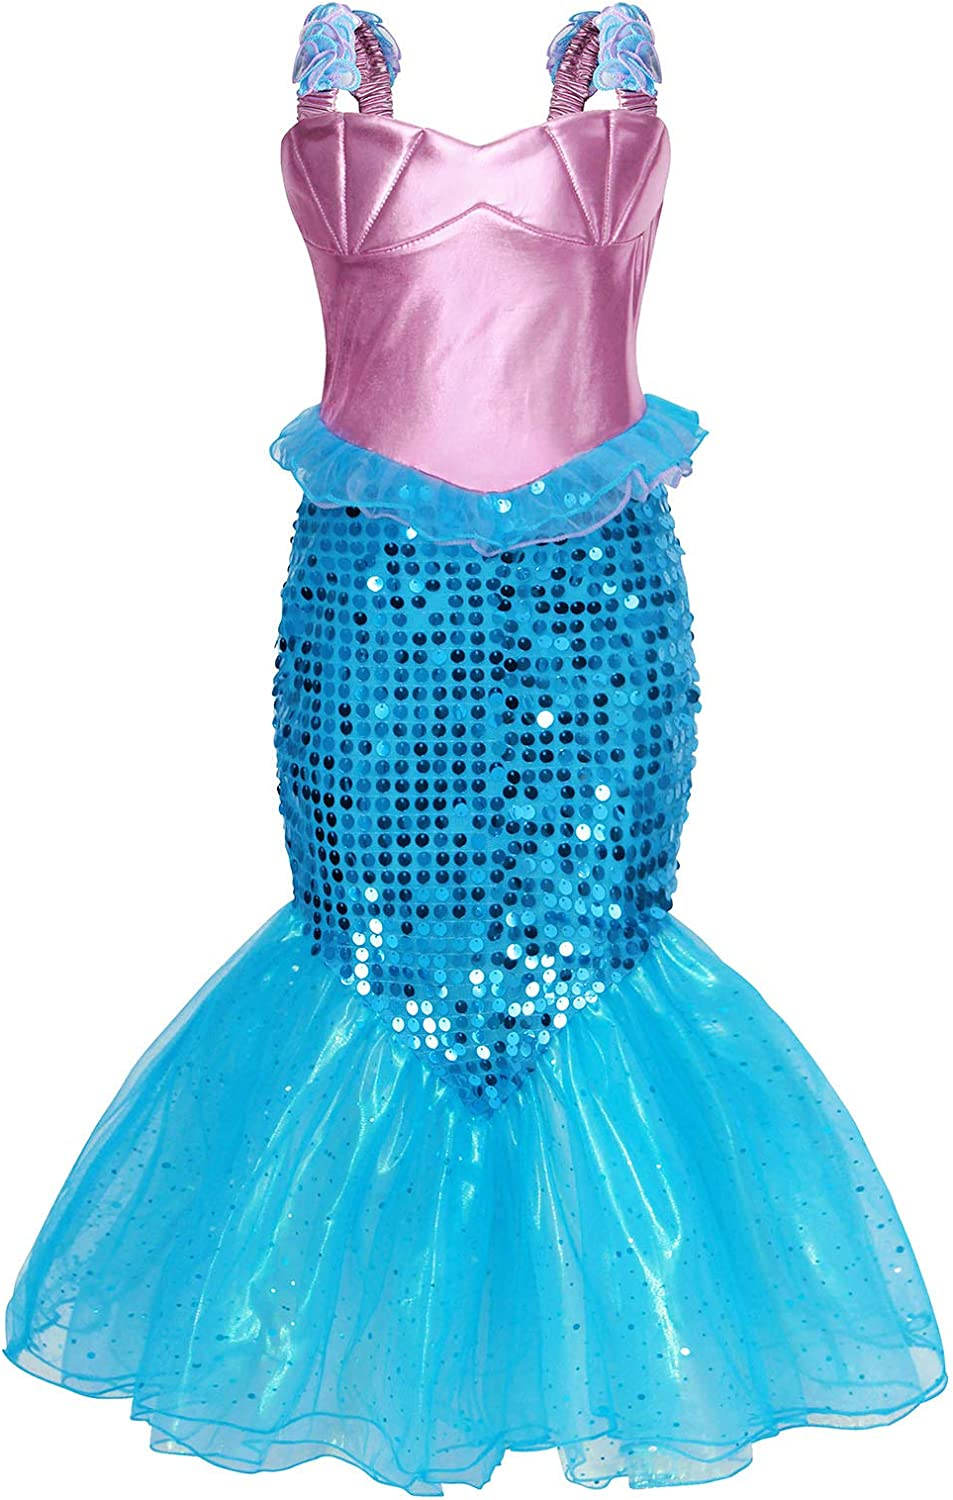 AmzBarley Little Girls Princess Mermaid Costumes Halloween Party Sequins Strappy Dress